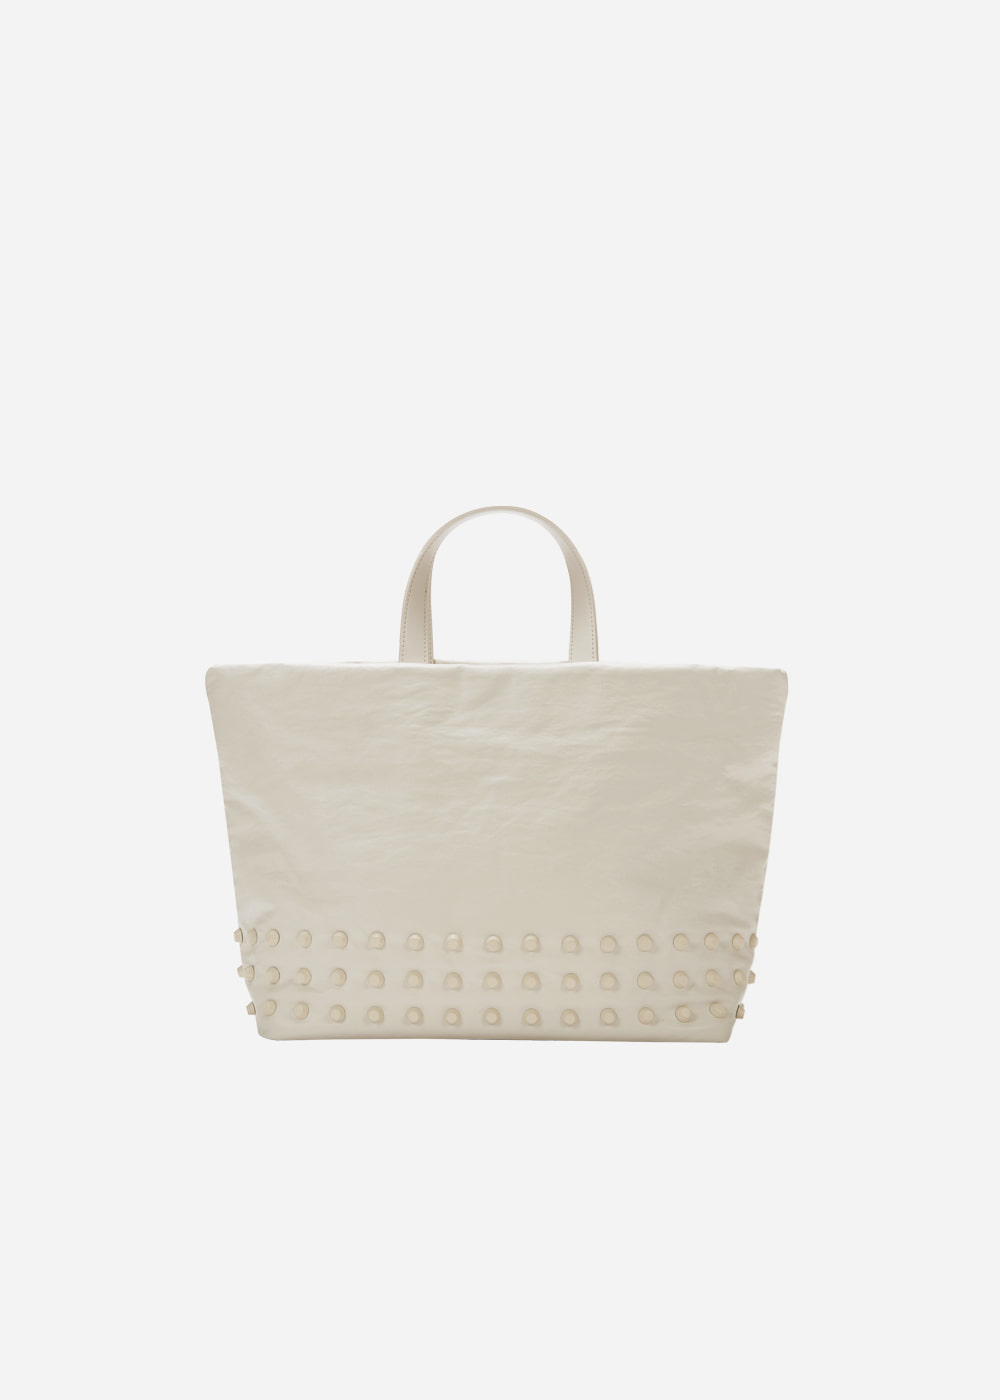 Stud Tote Cream Medium